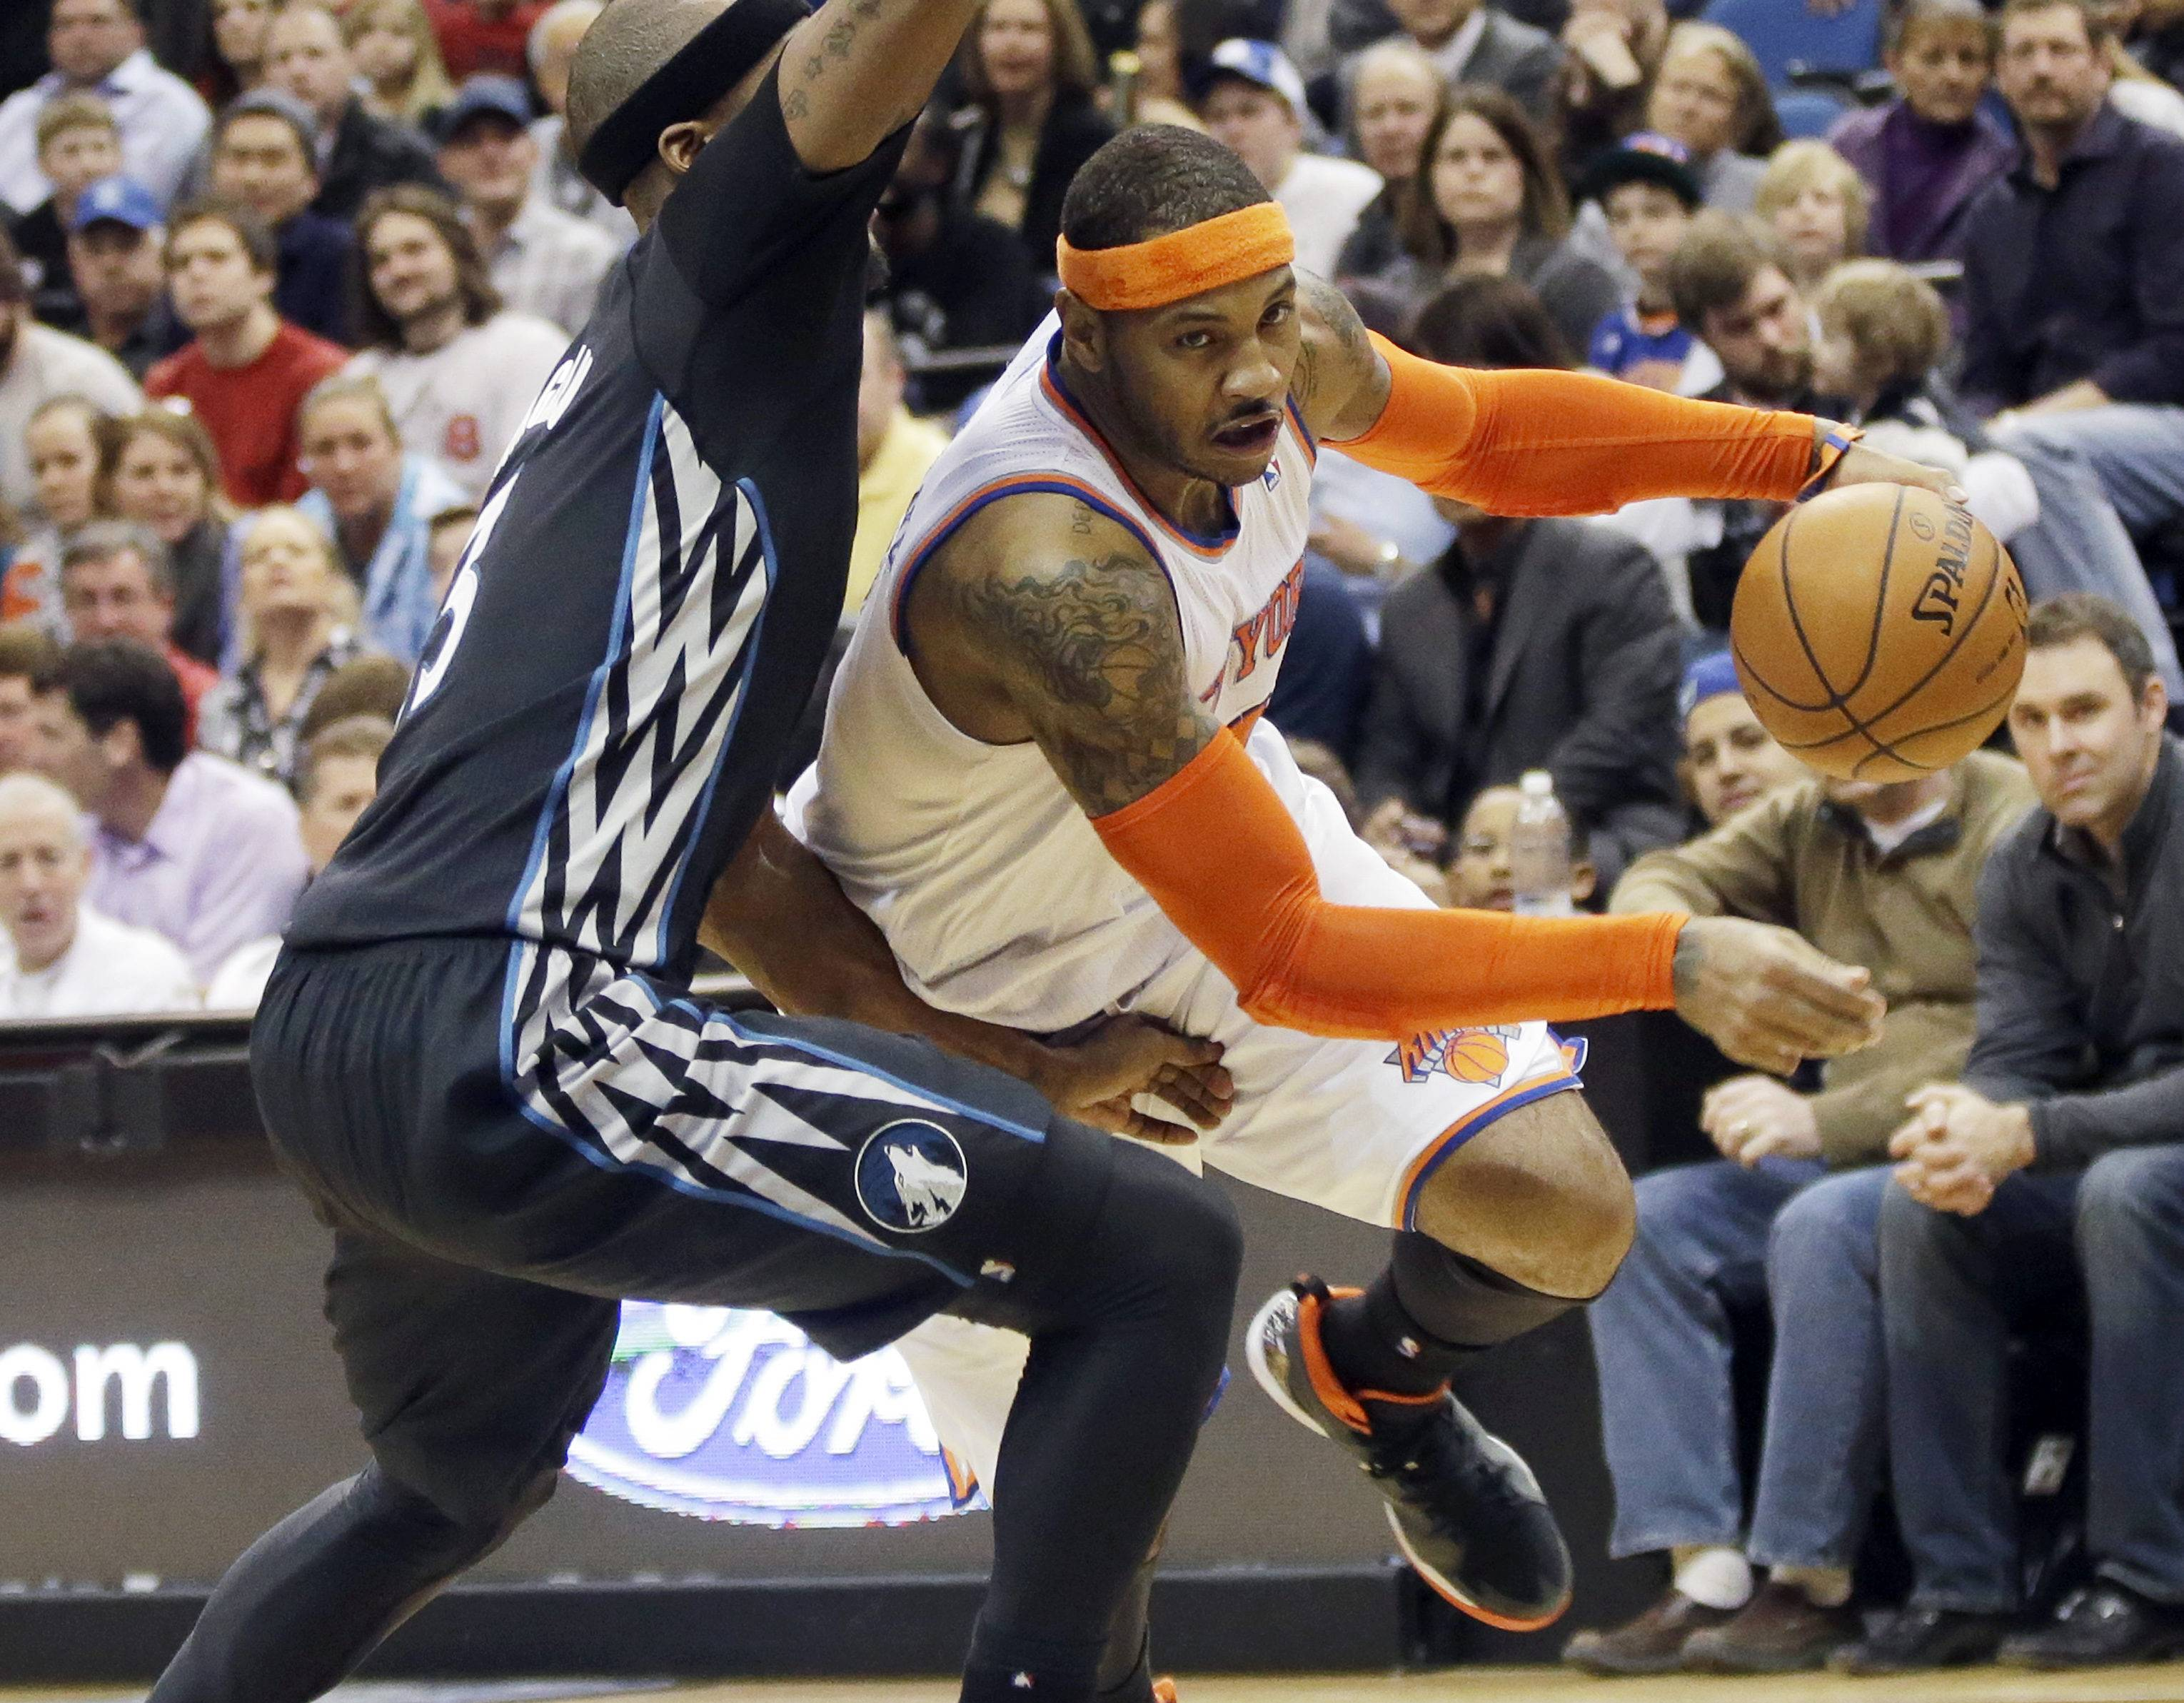 In this March 5, 2014, file photo, New York Knicks' Carmelo Anthony, right, leaves the floor as he drives around Minnesota Timberwolves' Dante Cunningham in the second half of an NBA basketball game in Minneapolis. The wait continues on Anthony's decision. Though some say we could find out Monday if he'll be a Bull.